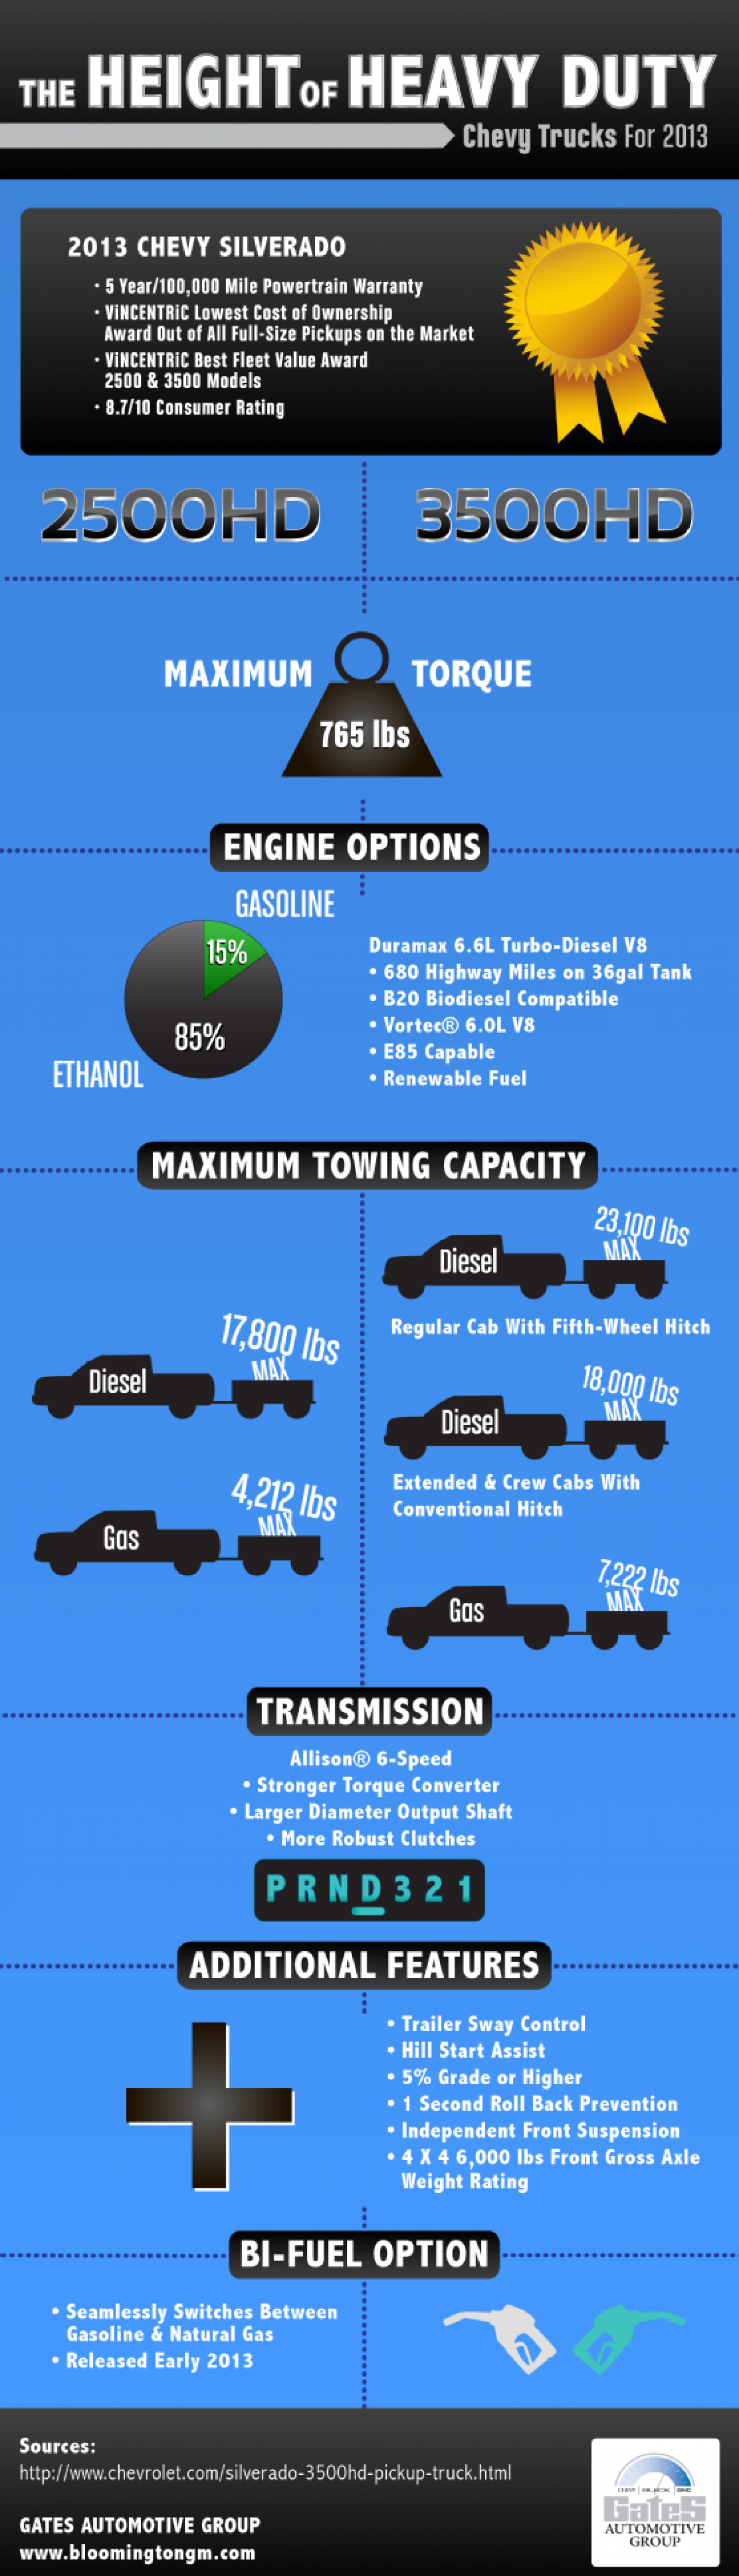 The Height of Heavy Duty: Chevy Trucks for 2013 Infographic